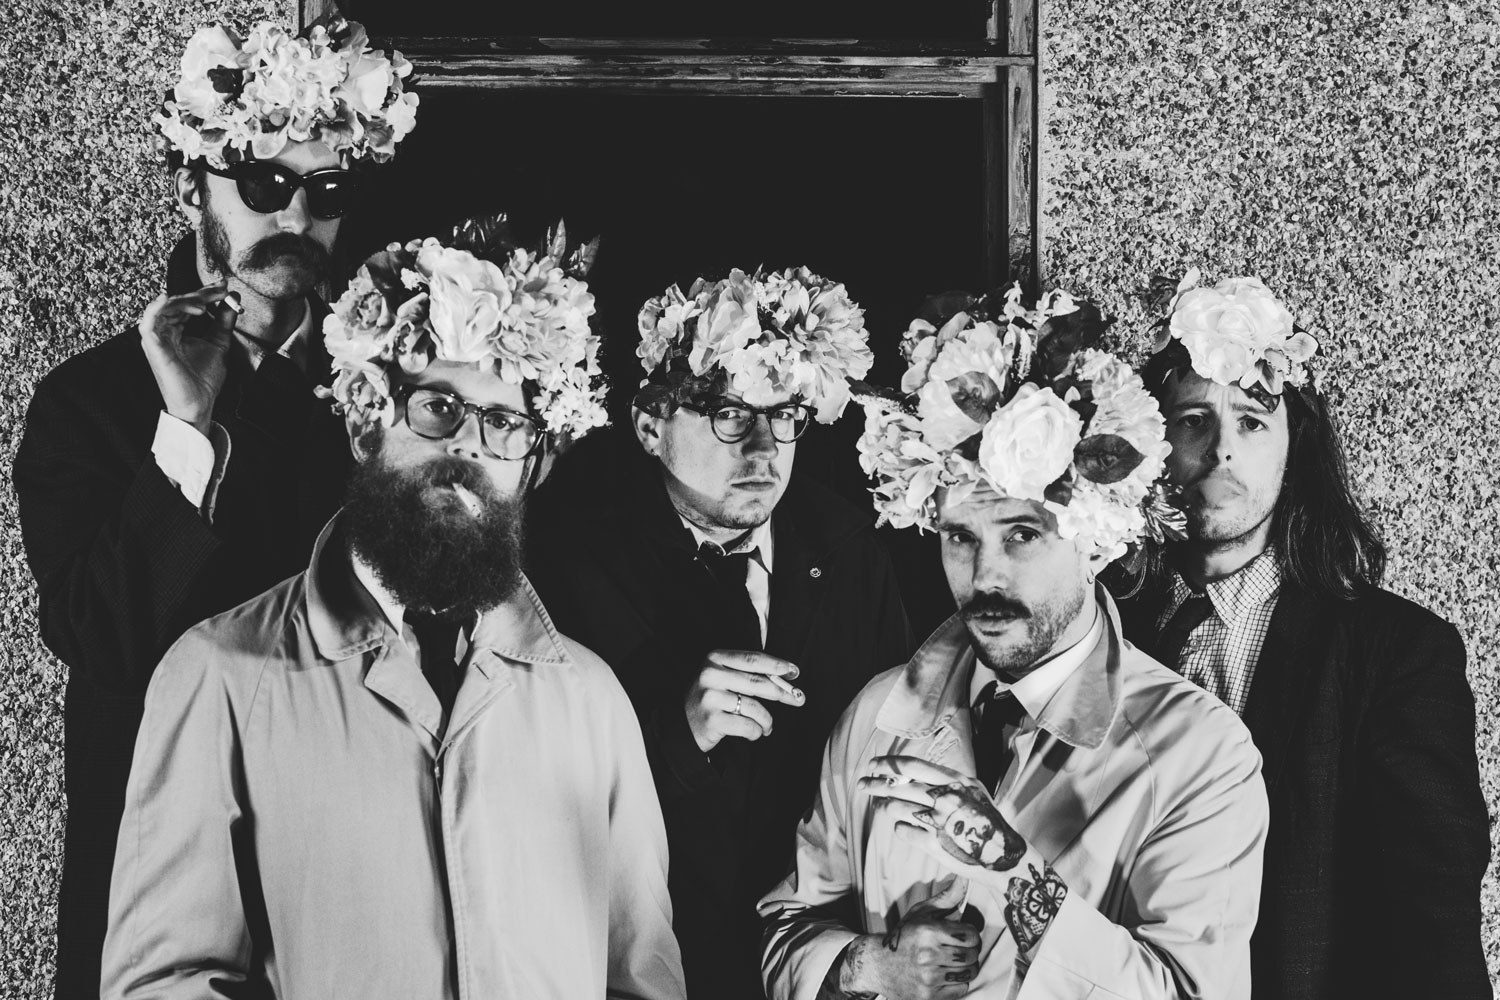 Idles have signed up for this year's Open'er Festival